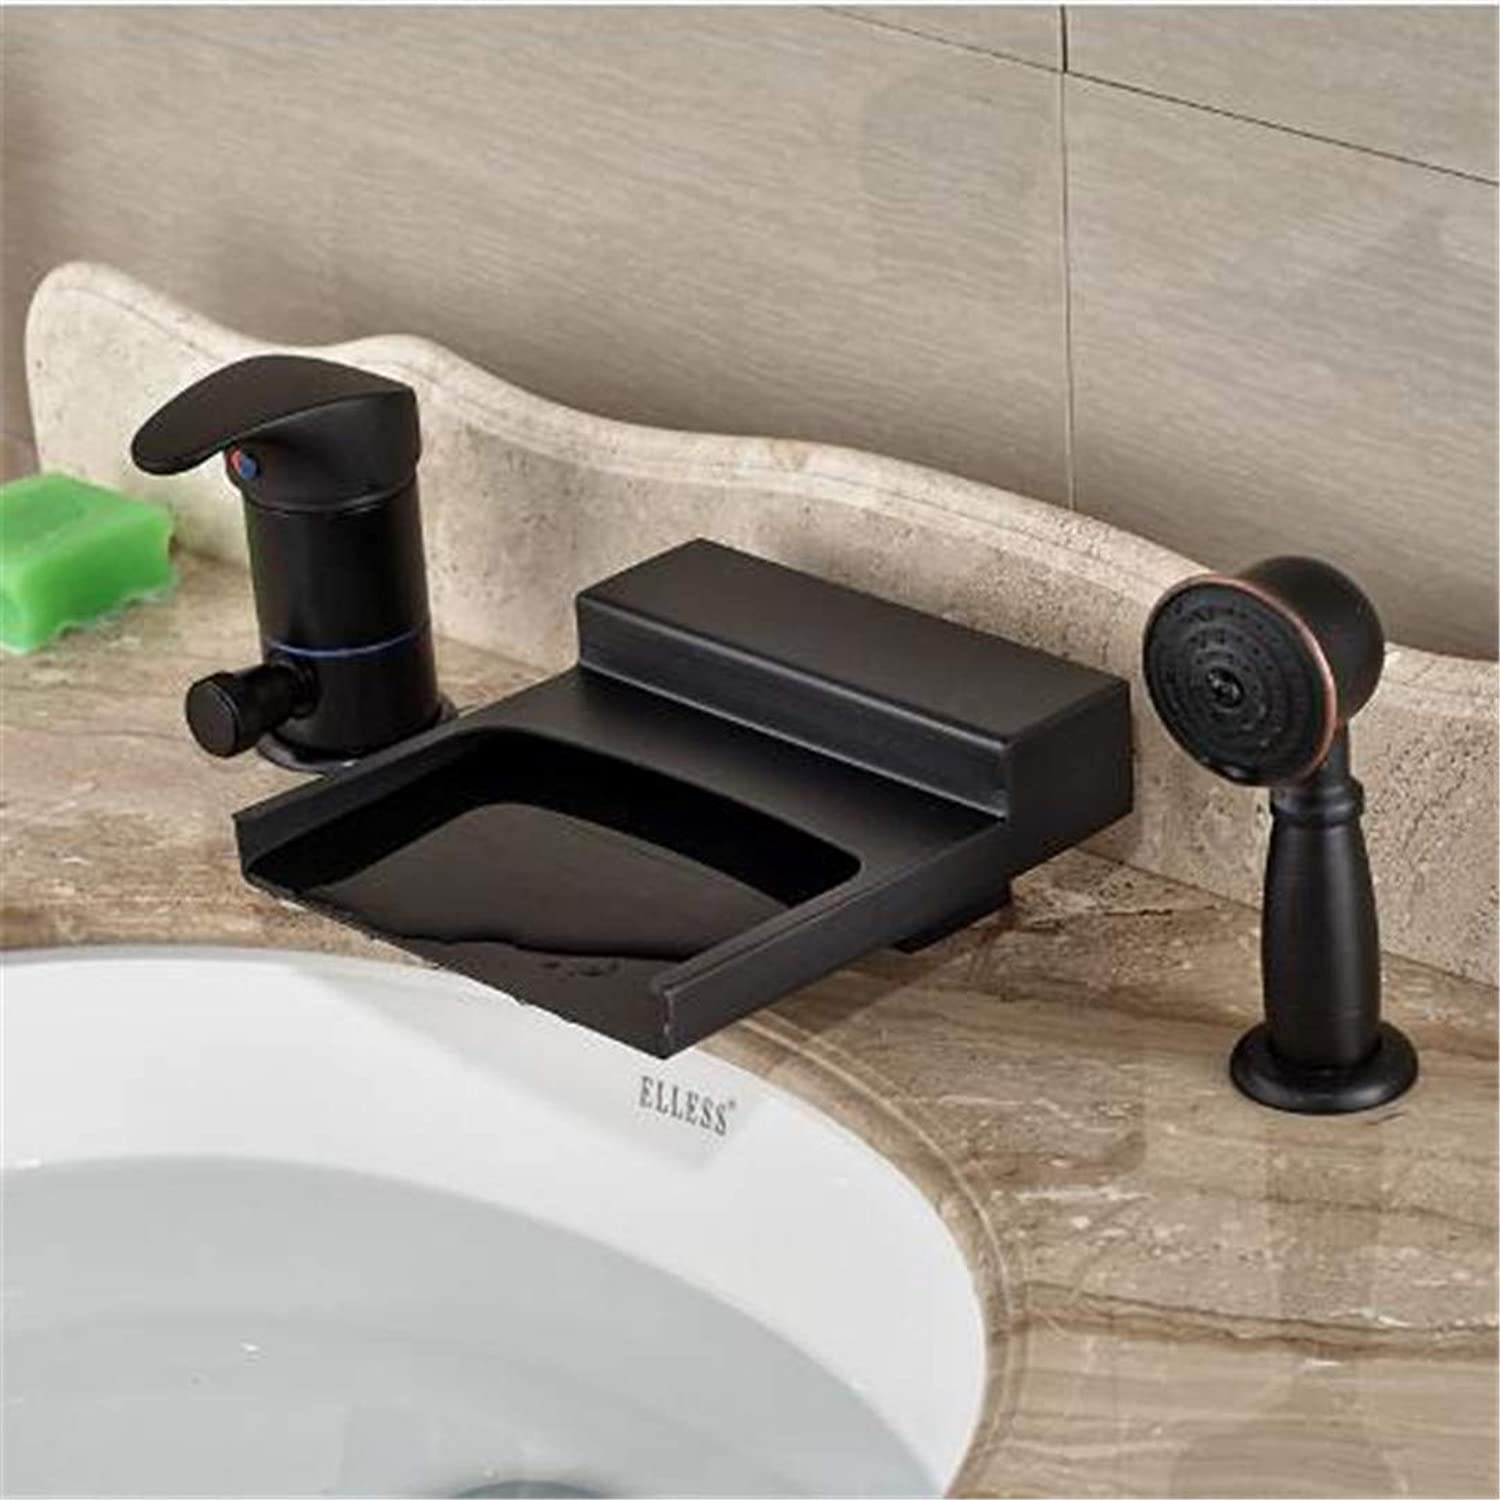 Oudan Faucet Basin Faucet Bathroom Faucet Kitchen Faucetluxury Oil Rubbed Bronze Single Handle Waterfall Bathtub Faucet Deck Mount Bath Shower Mixer Tap with (color   -, Size   -)